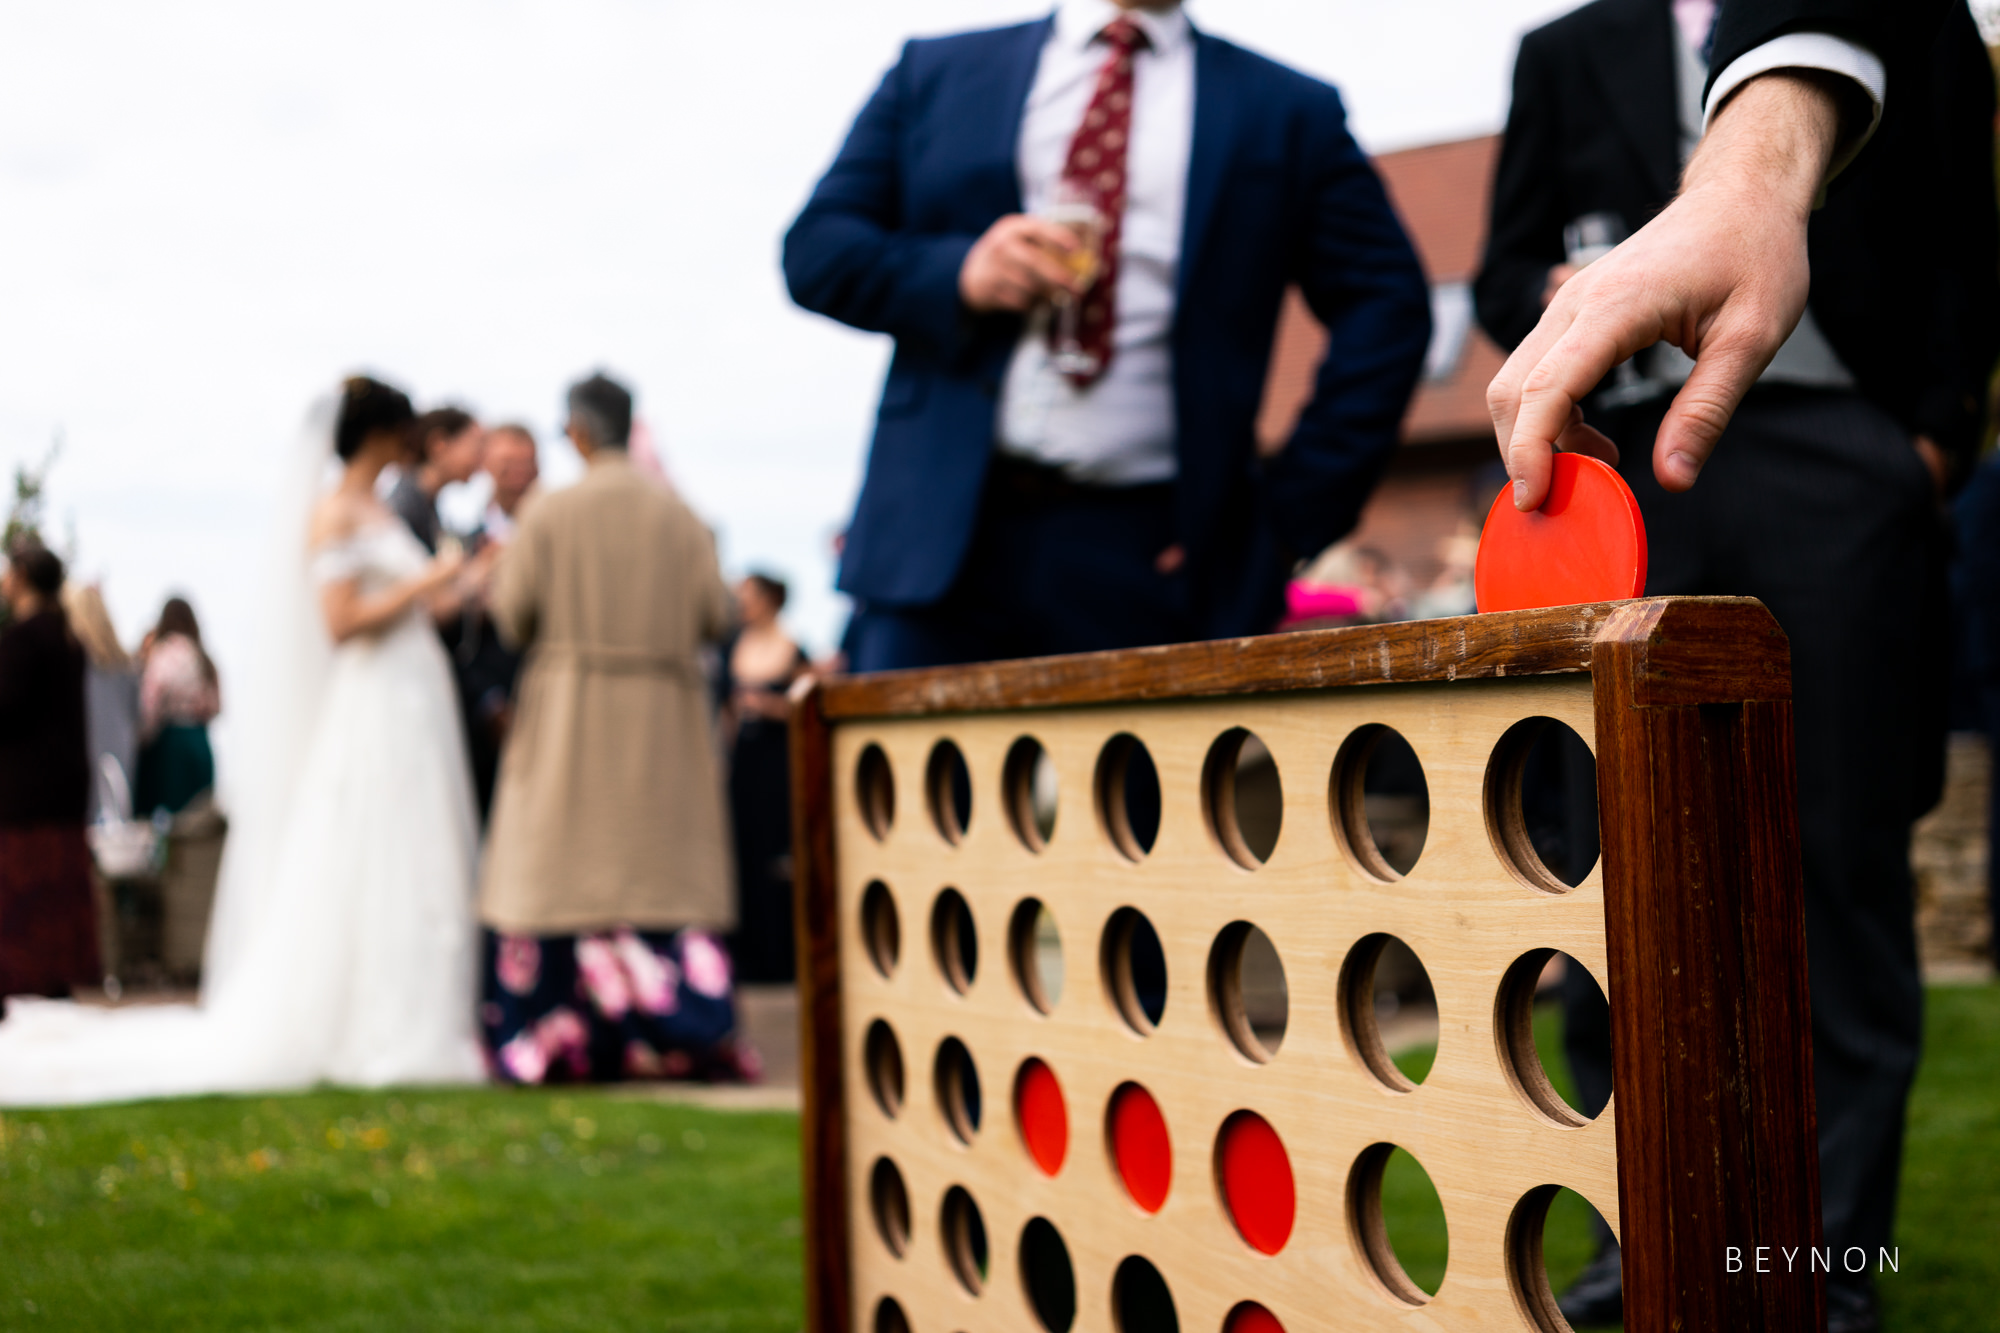 Connect 4 is a popular garden game at weddings